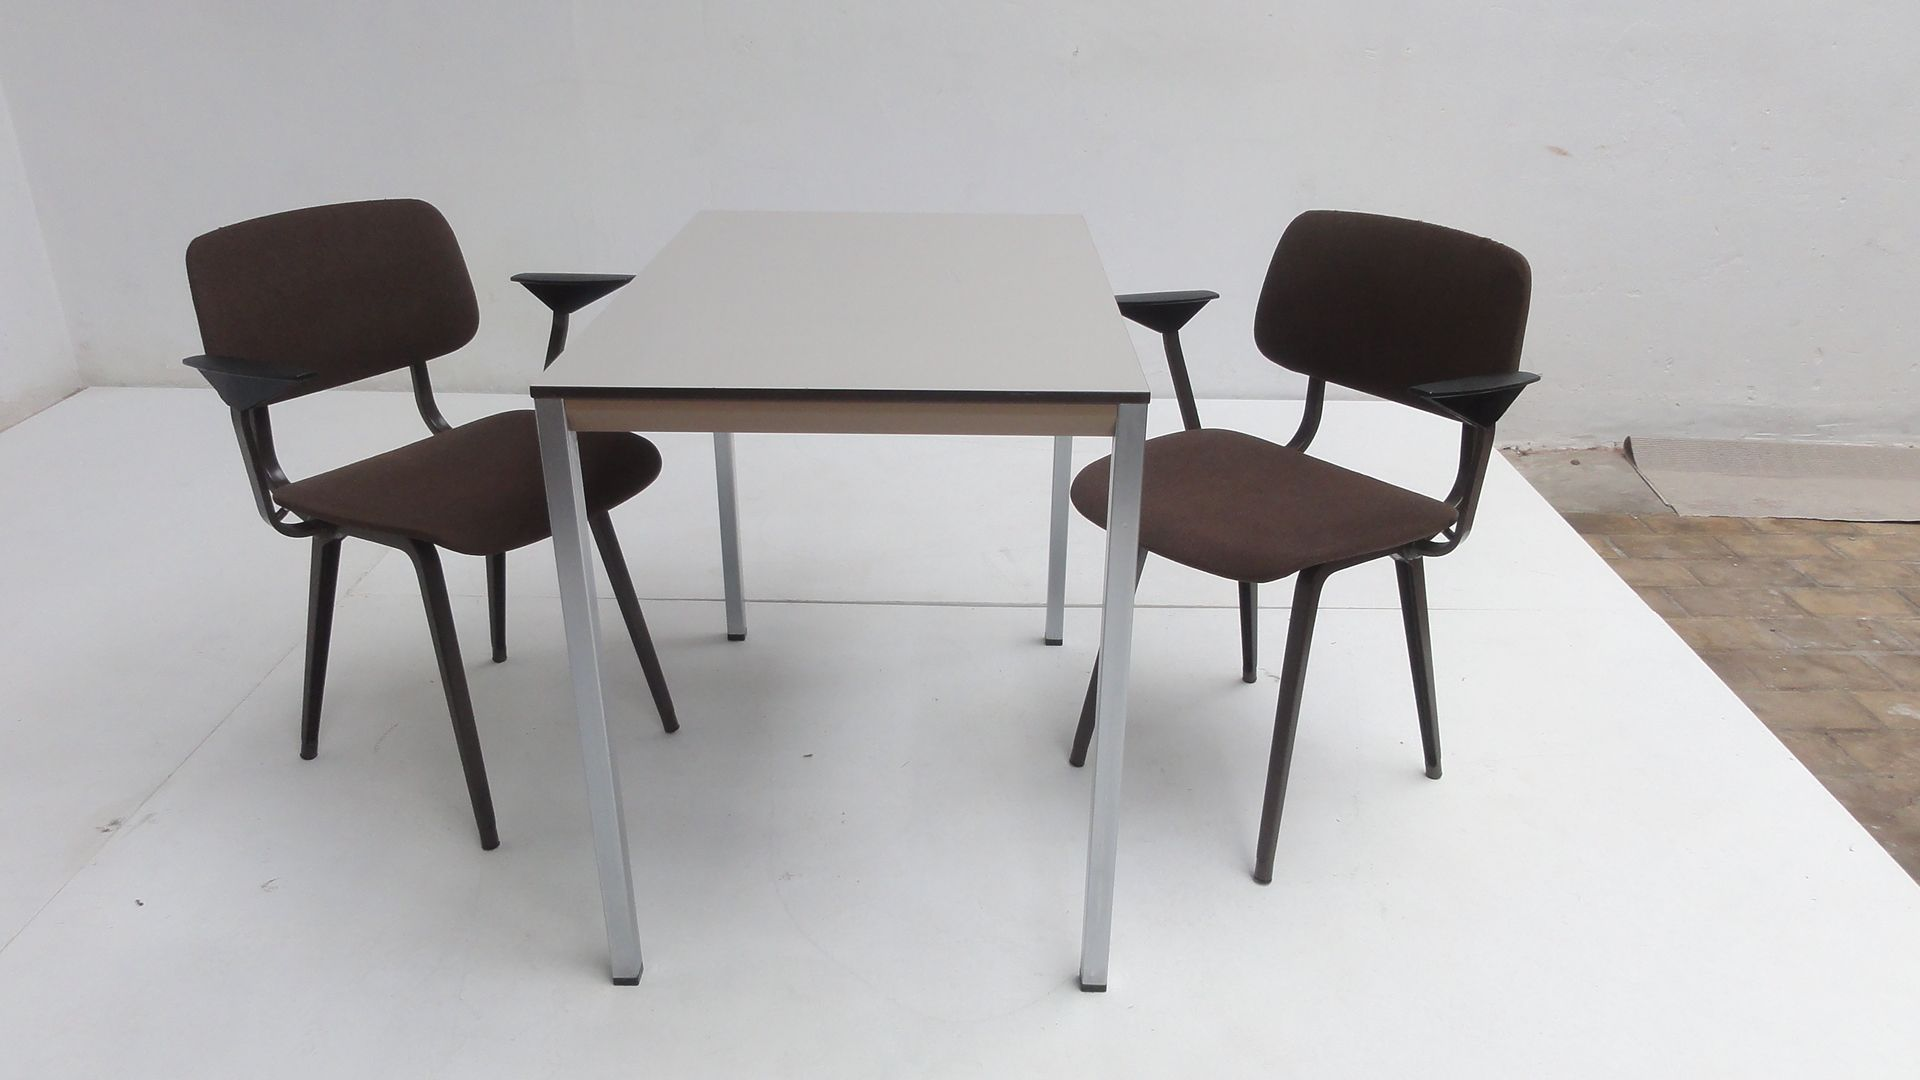 Facet table and revolt chair dining set by friso kramer for ahrend de cirkel for sale at pamono - Kamer dining ...